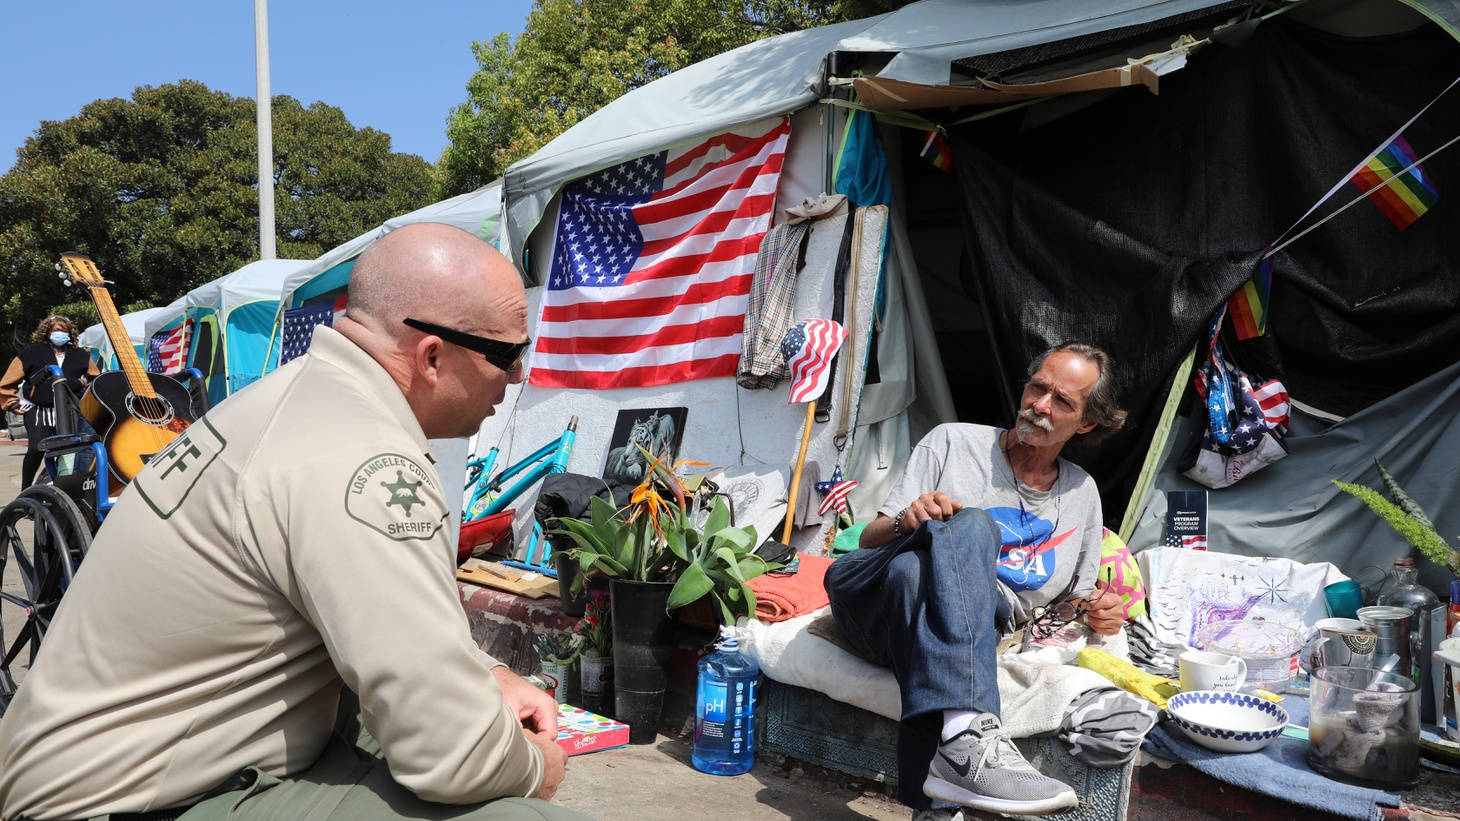 Douglas Bue, 65, speaks to a deputy with the LA County Sheriff's Department at the Veterans Row homeless encampment. Bue turned down an offer to go to the Dream Center but still hopes to move inside soon.